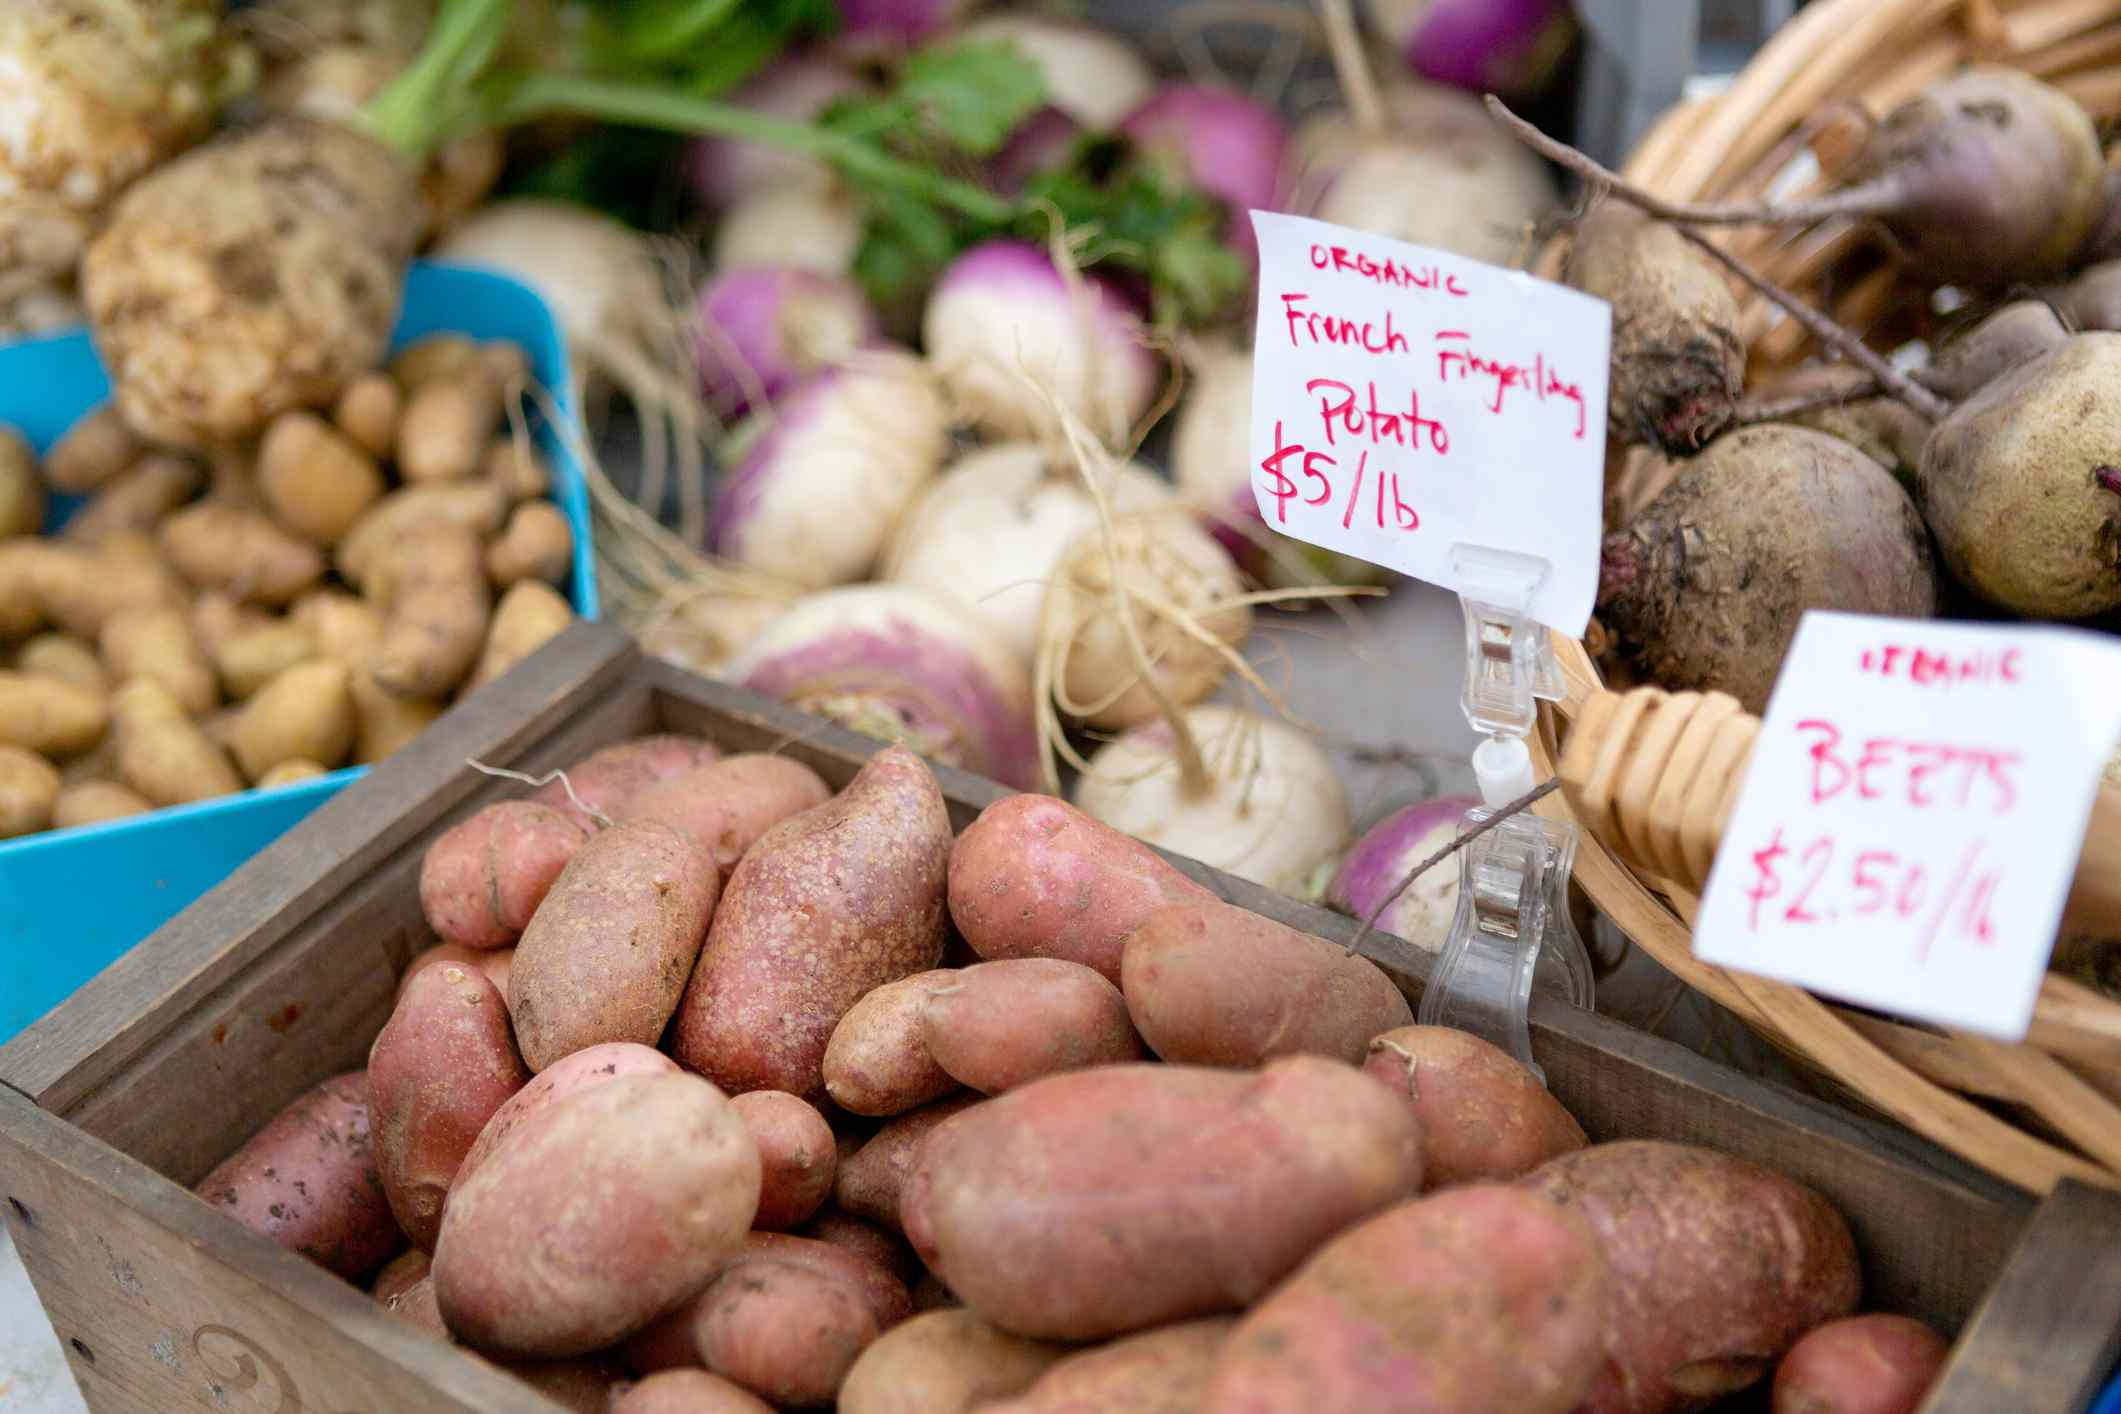 potatoes and beets for sale at farmers market